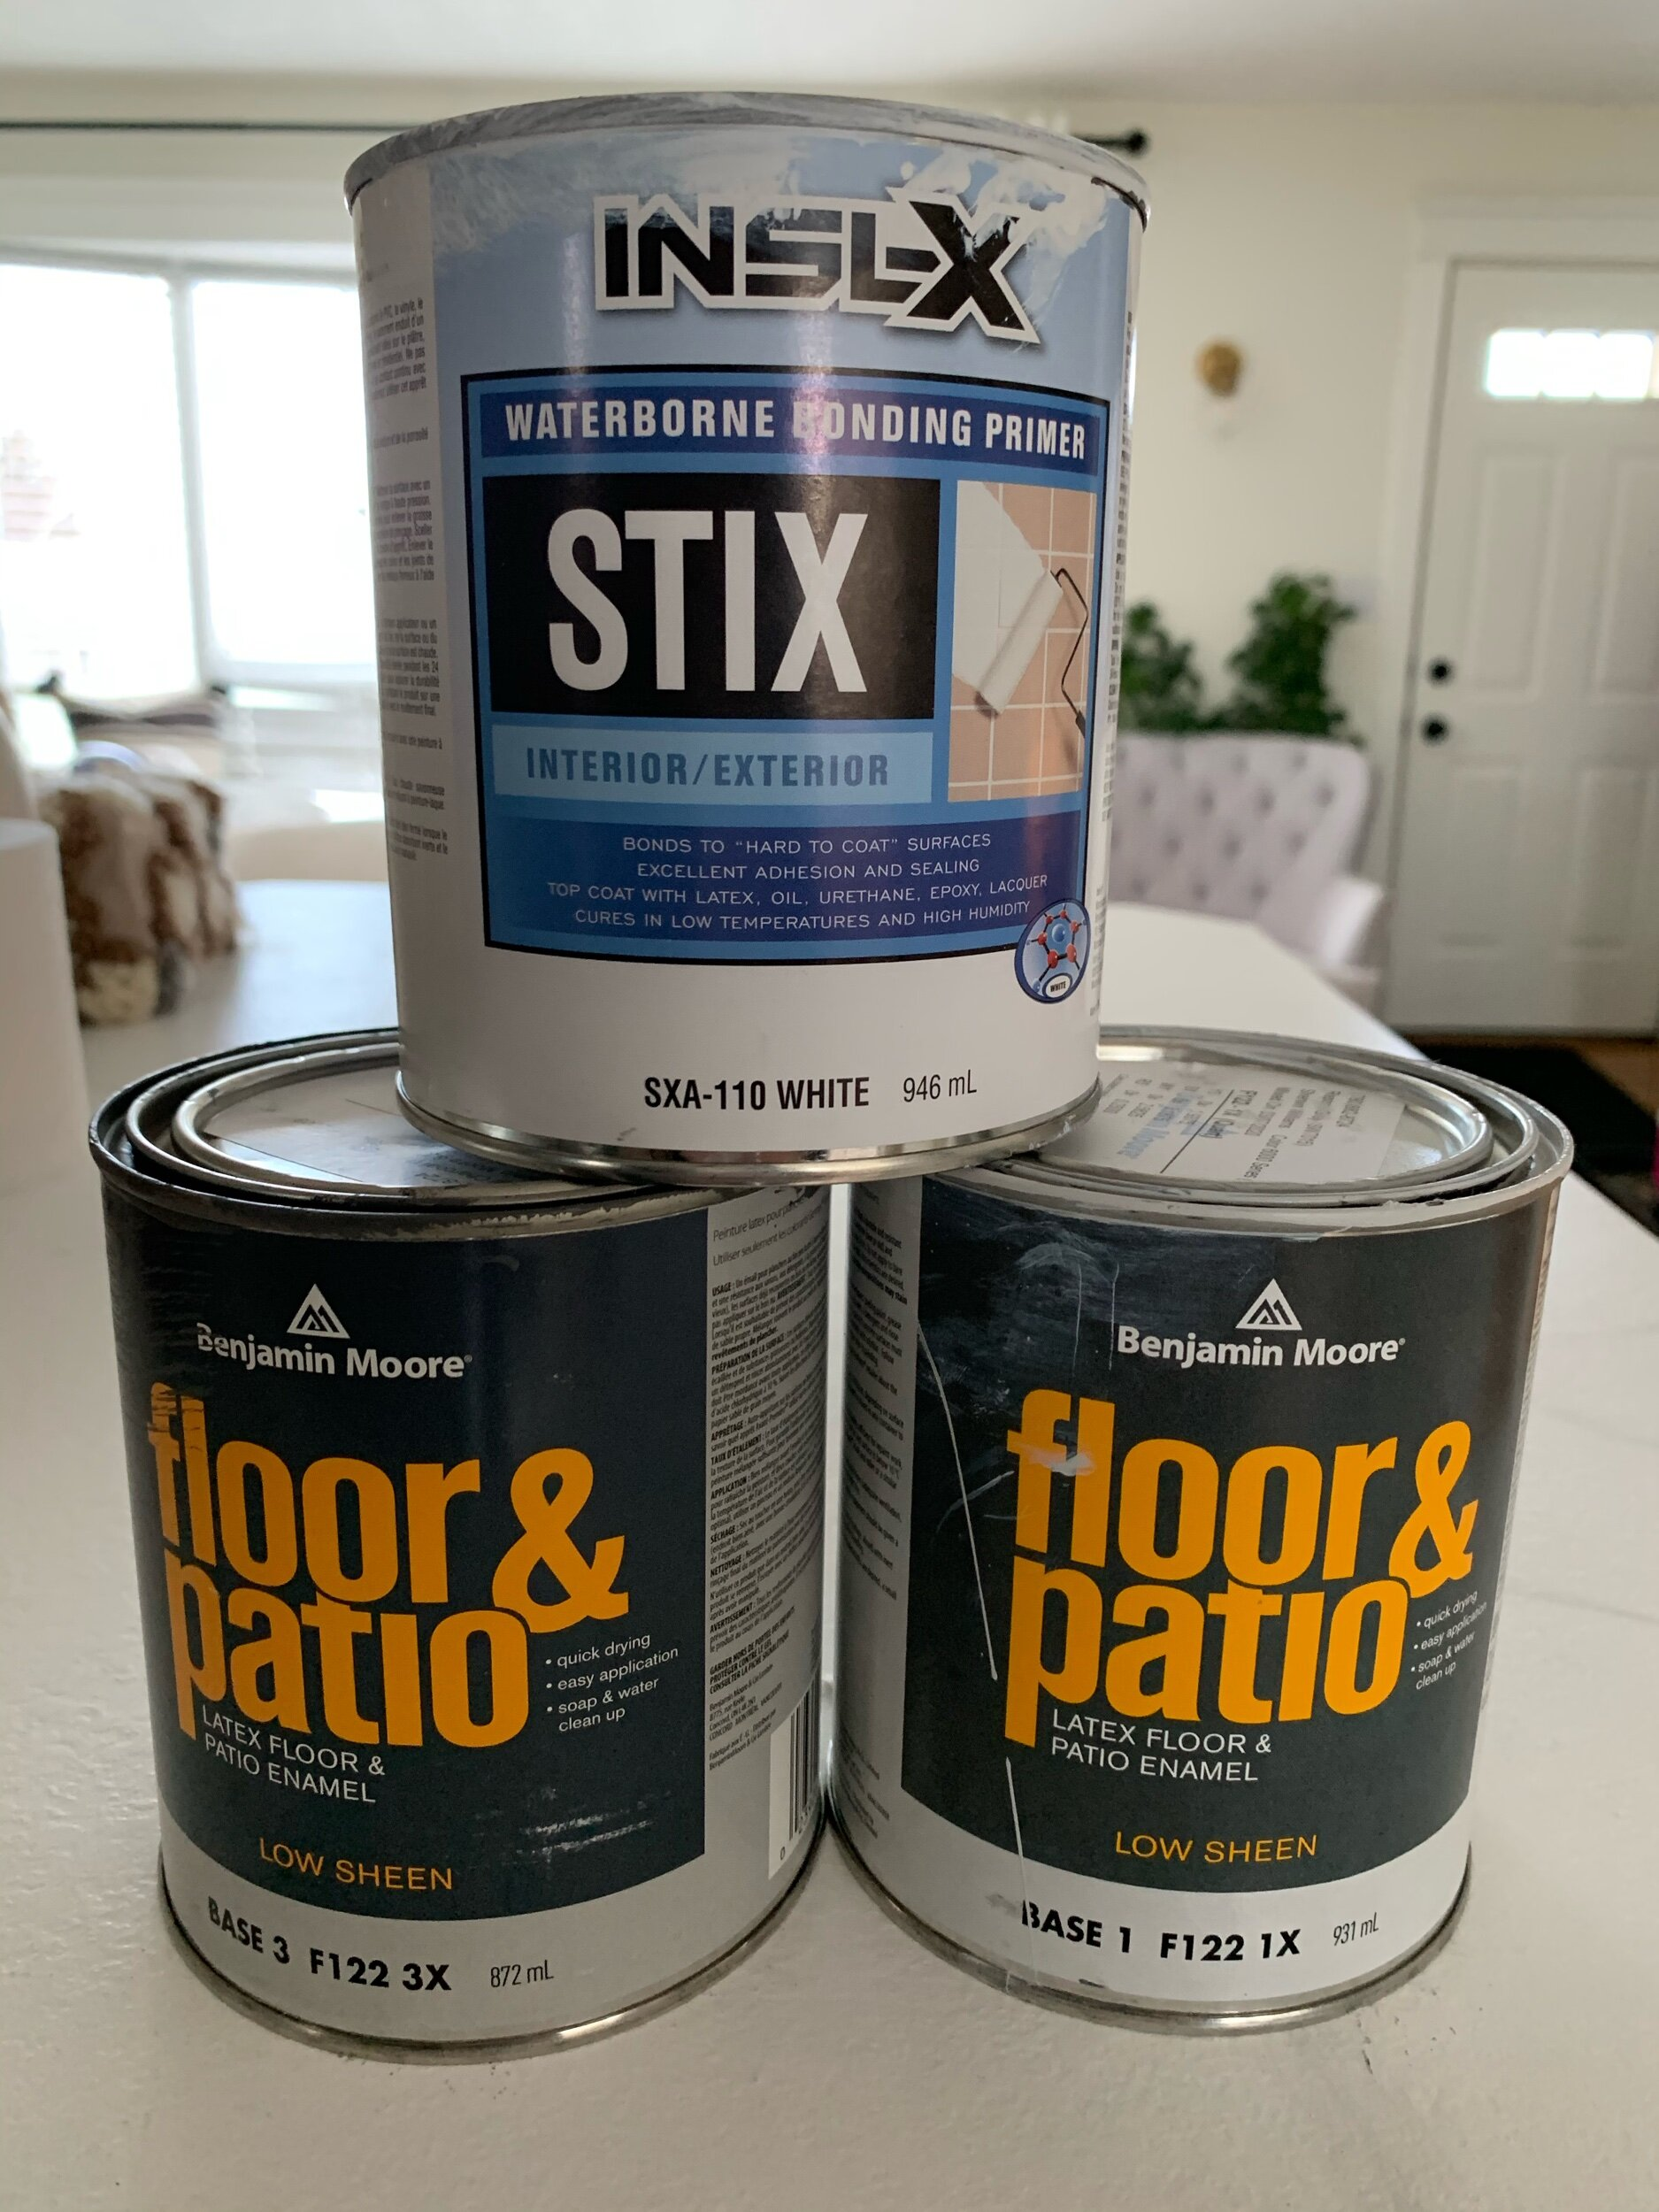 this is a photo of three paint cans, bonding primer and 2 cans of floor and patio paint